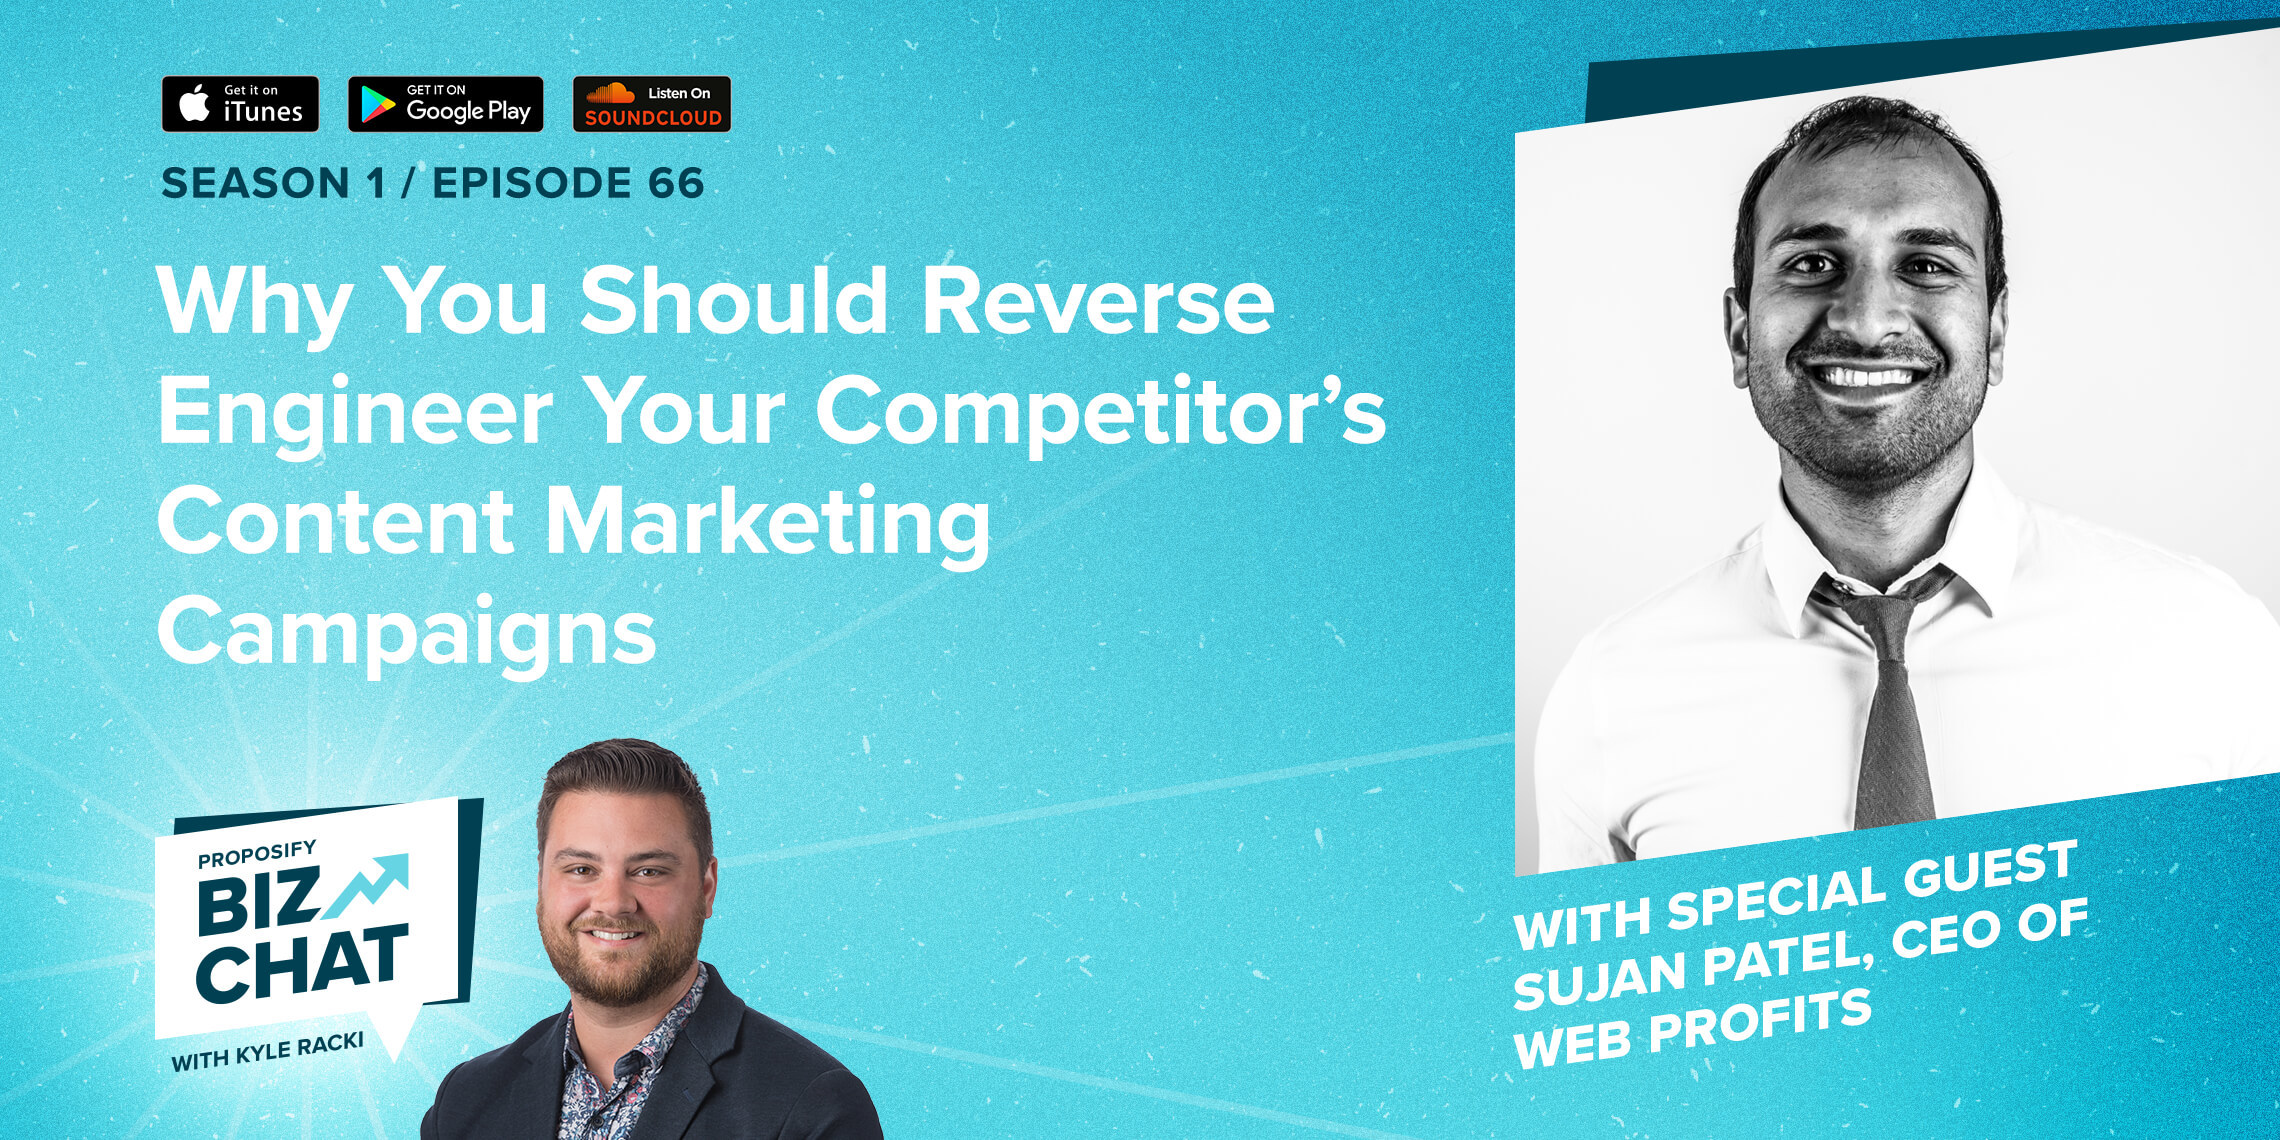 Why You Should Reverse Engineer Your Competitor's Content Marketing Campaigns